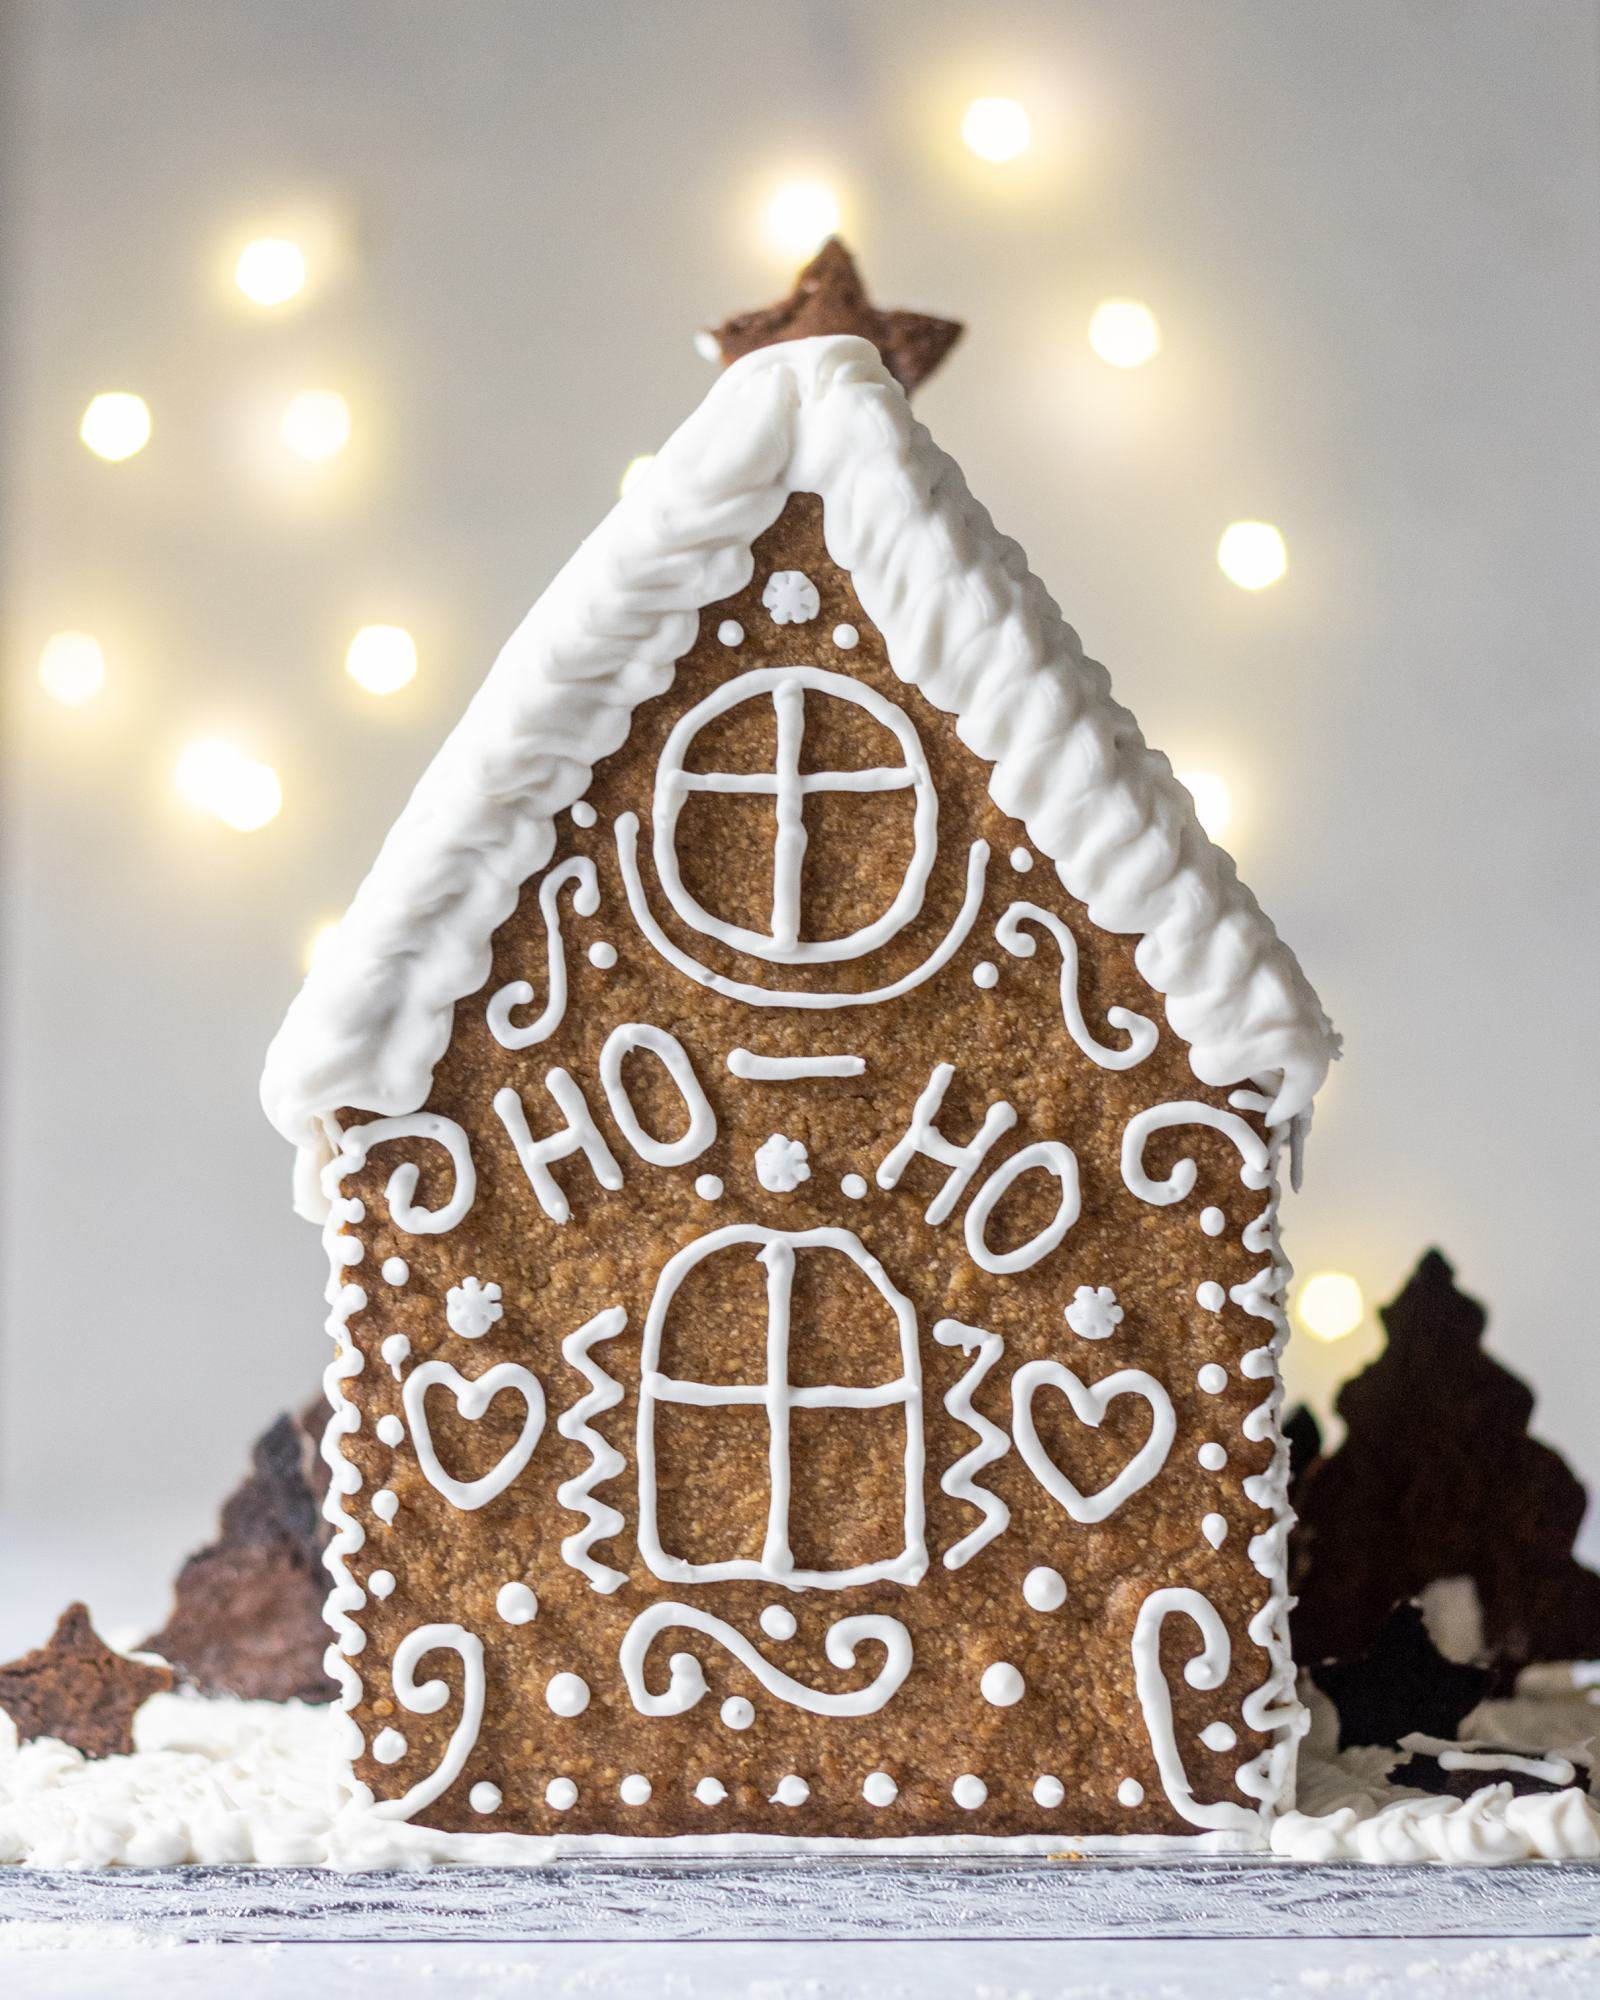 Vegan Gingerbread House, decorated with white buttercream and 'Ho Ho' written on the back, with white roof, photographed on a light backdrop with fairylights